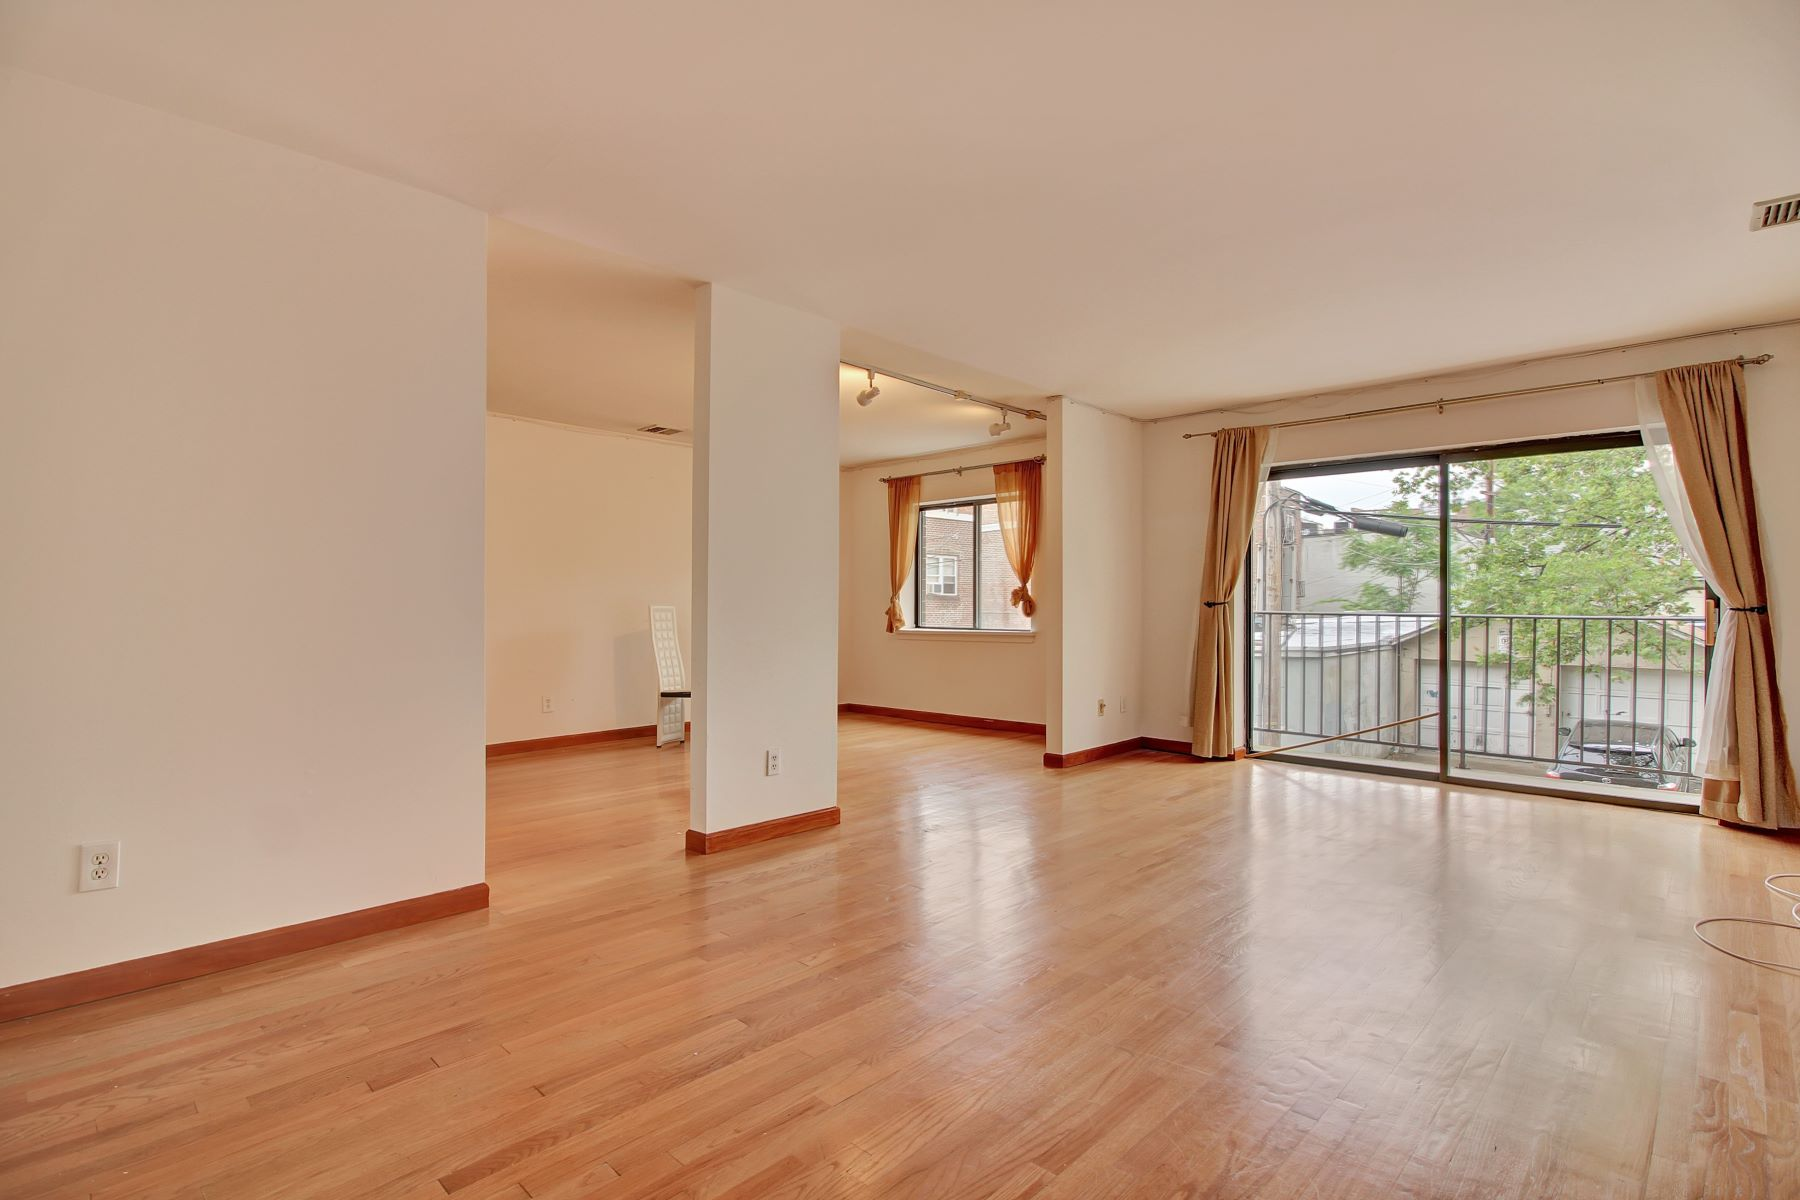 Condominium for Sale at Million Dollar Views on Blvd East! 6023 Blvd East #2 West New York, New Jersey, 07093 United States